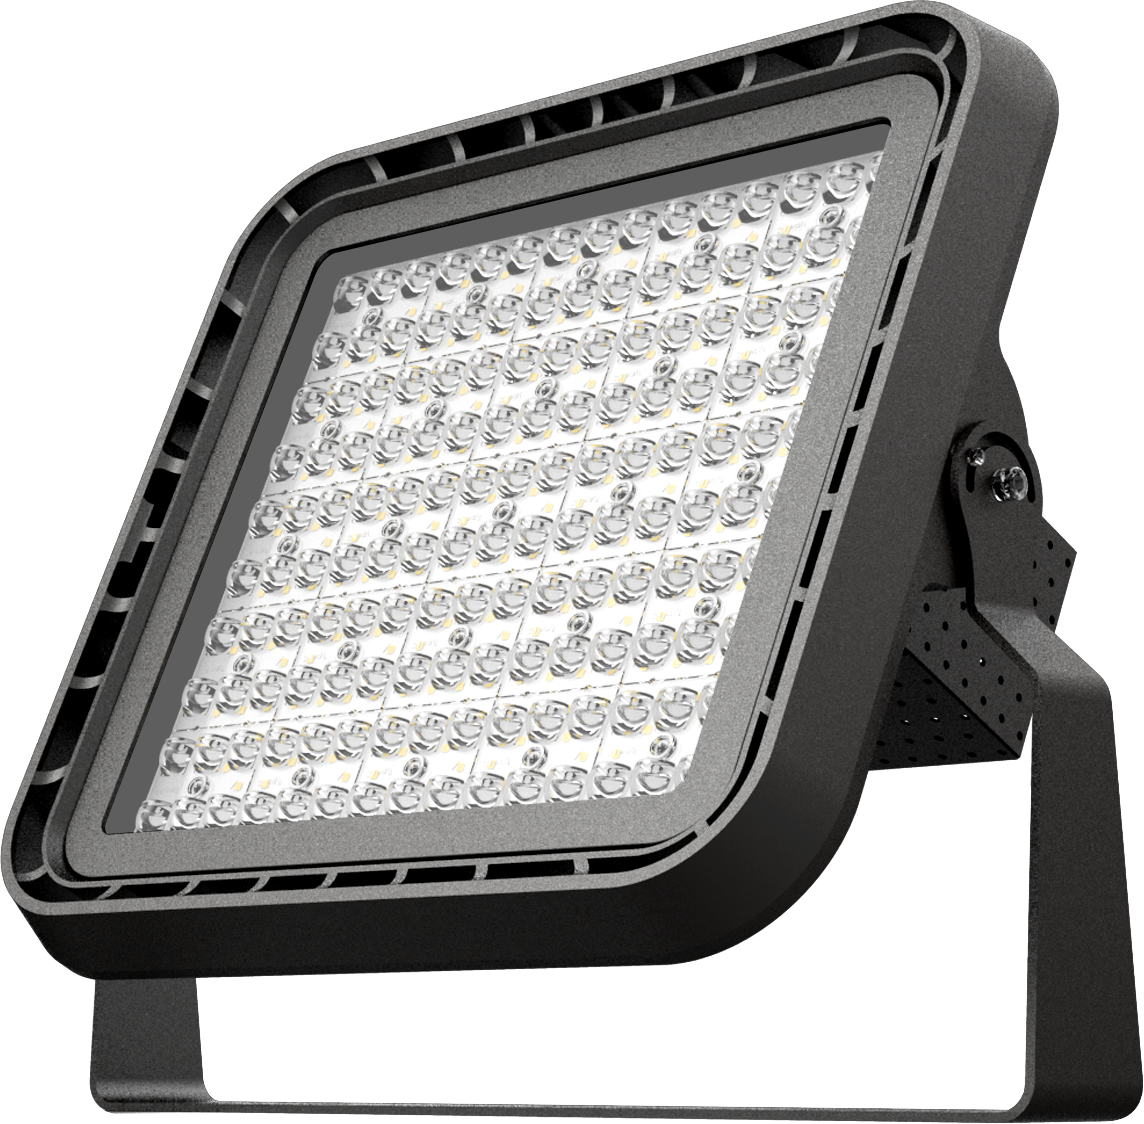 Viper: aparat led industrial